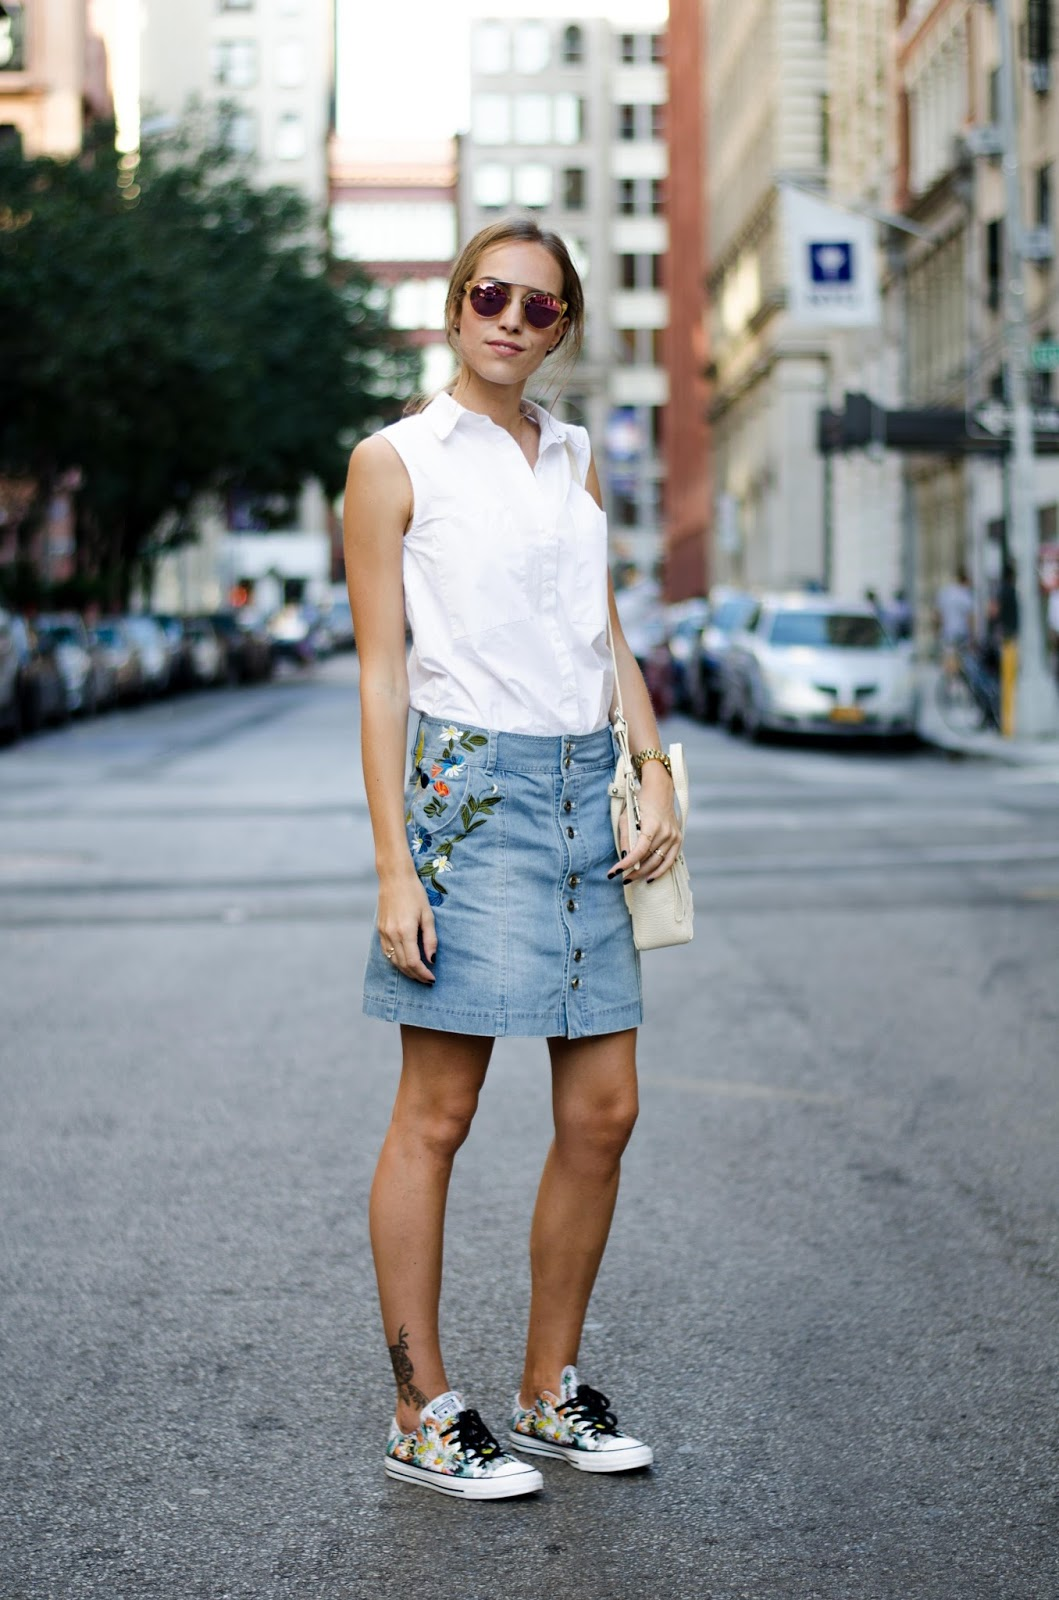 white sleeveless shirt denim skirt sneakers outfit